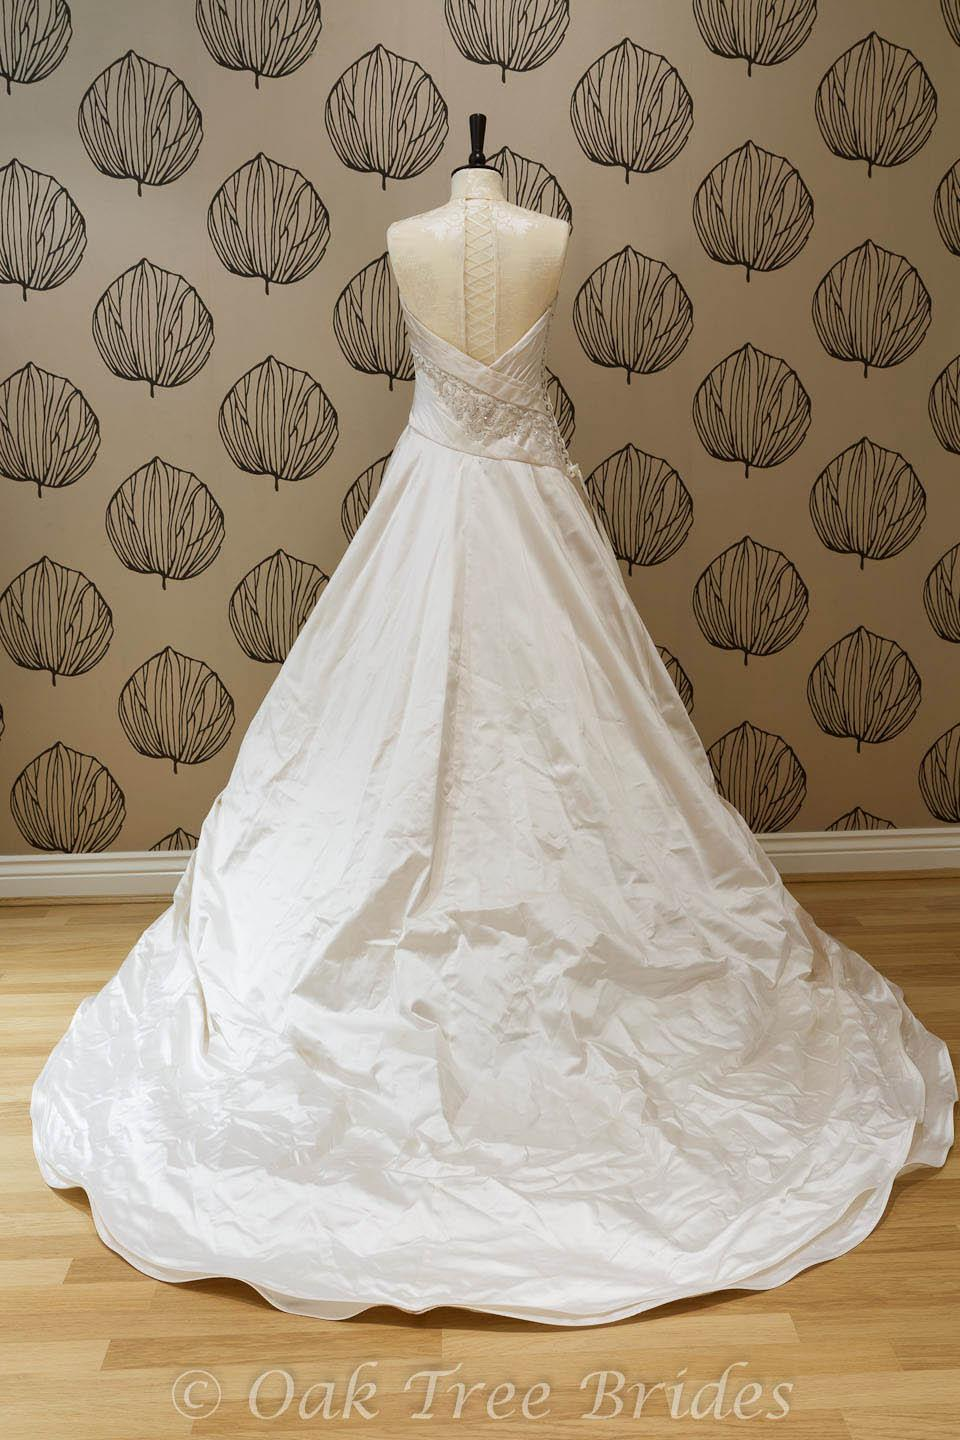 Preloved wedding dresses second hand and preloved html for Second hand wedding dresses for sale